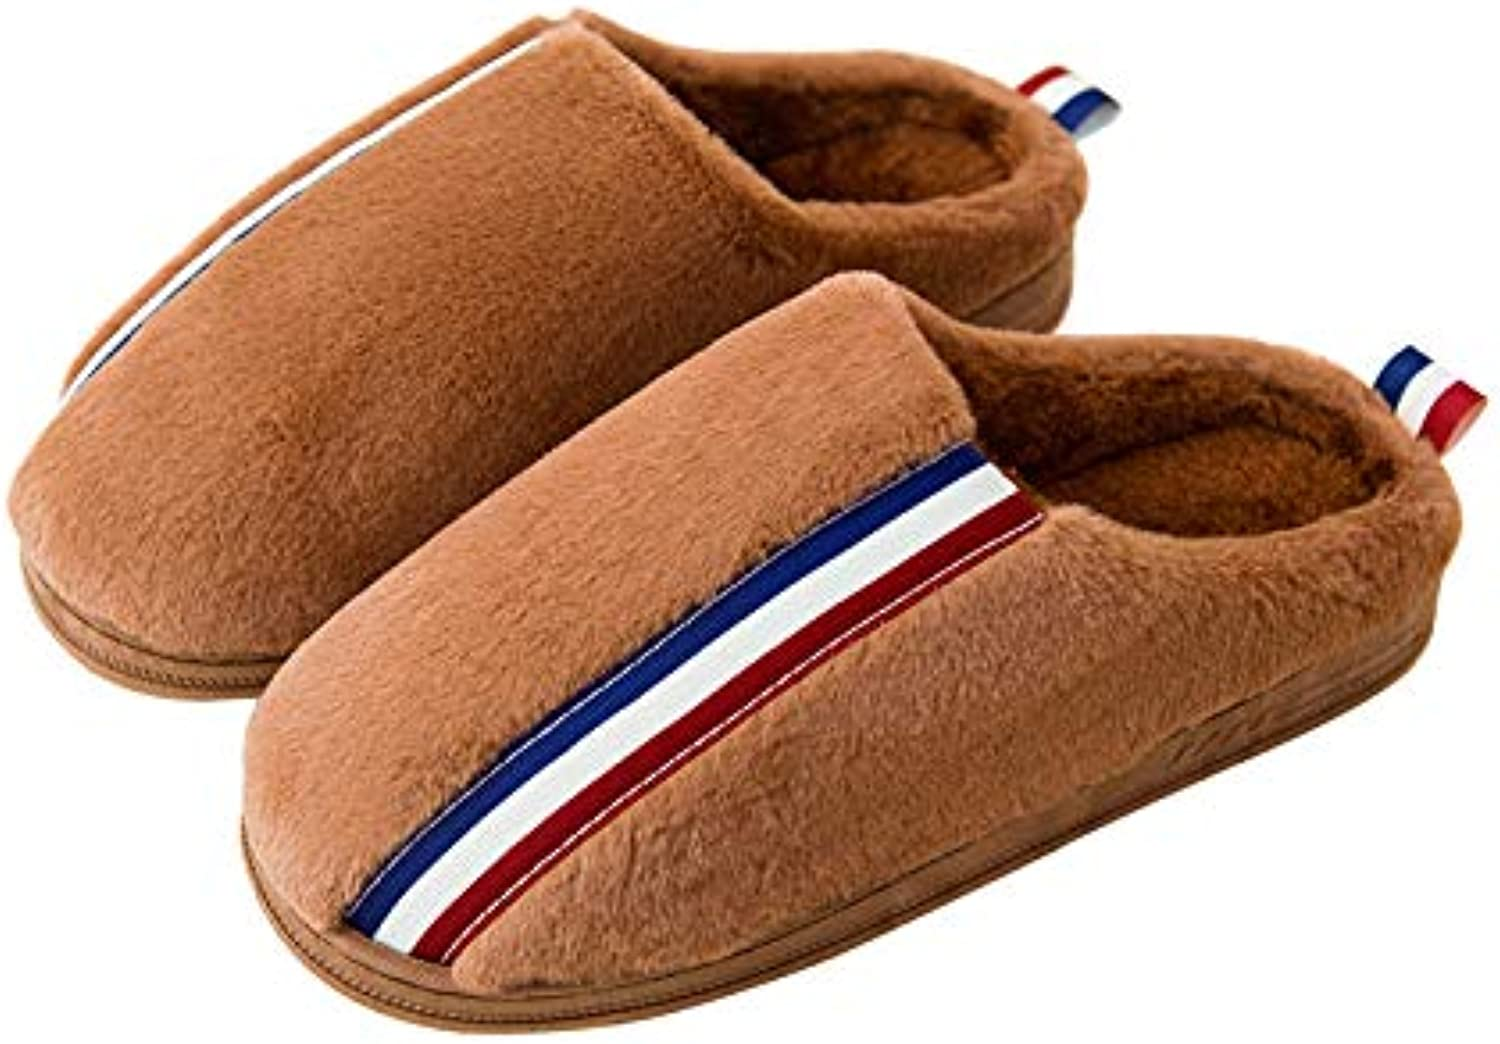 Winter Slippers Soft Flannel House Slippers Plush Lining Clog Anti-Slip Indoor shoes Adult Women Men